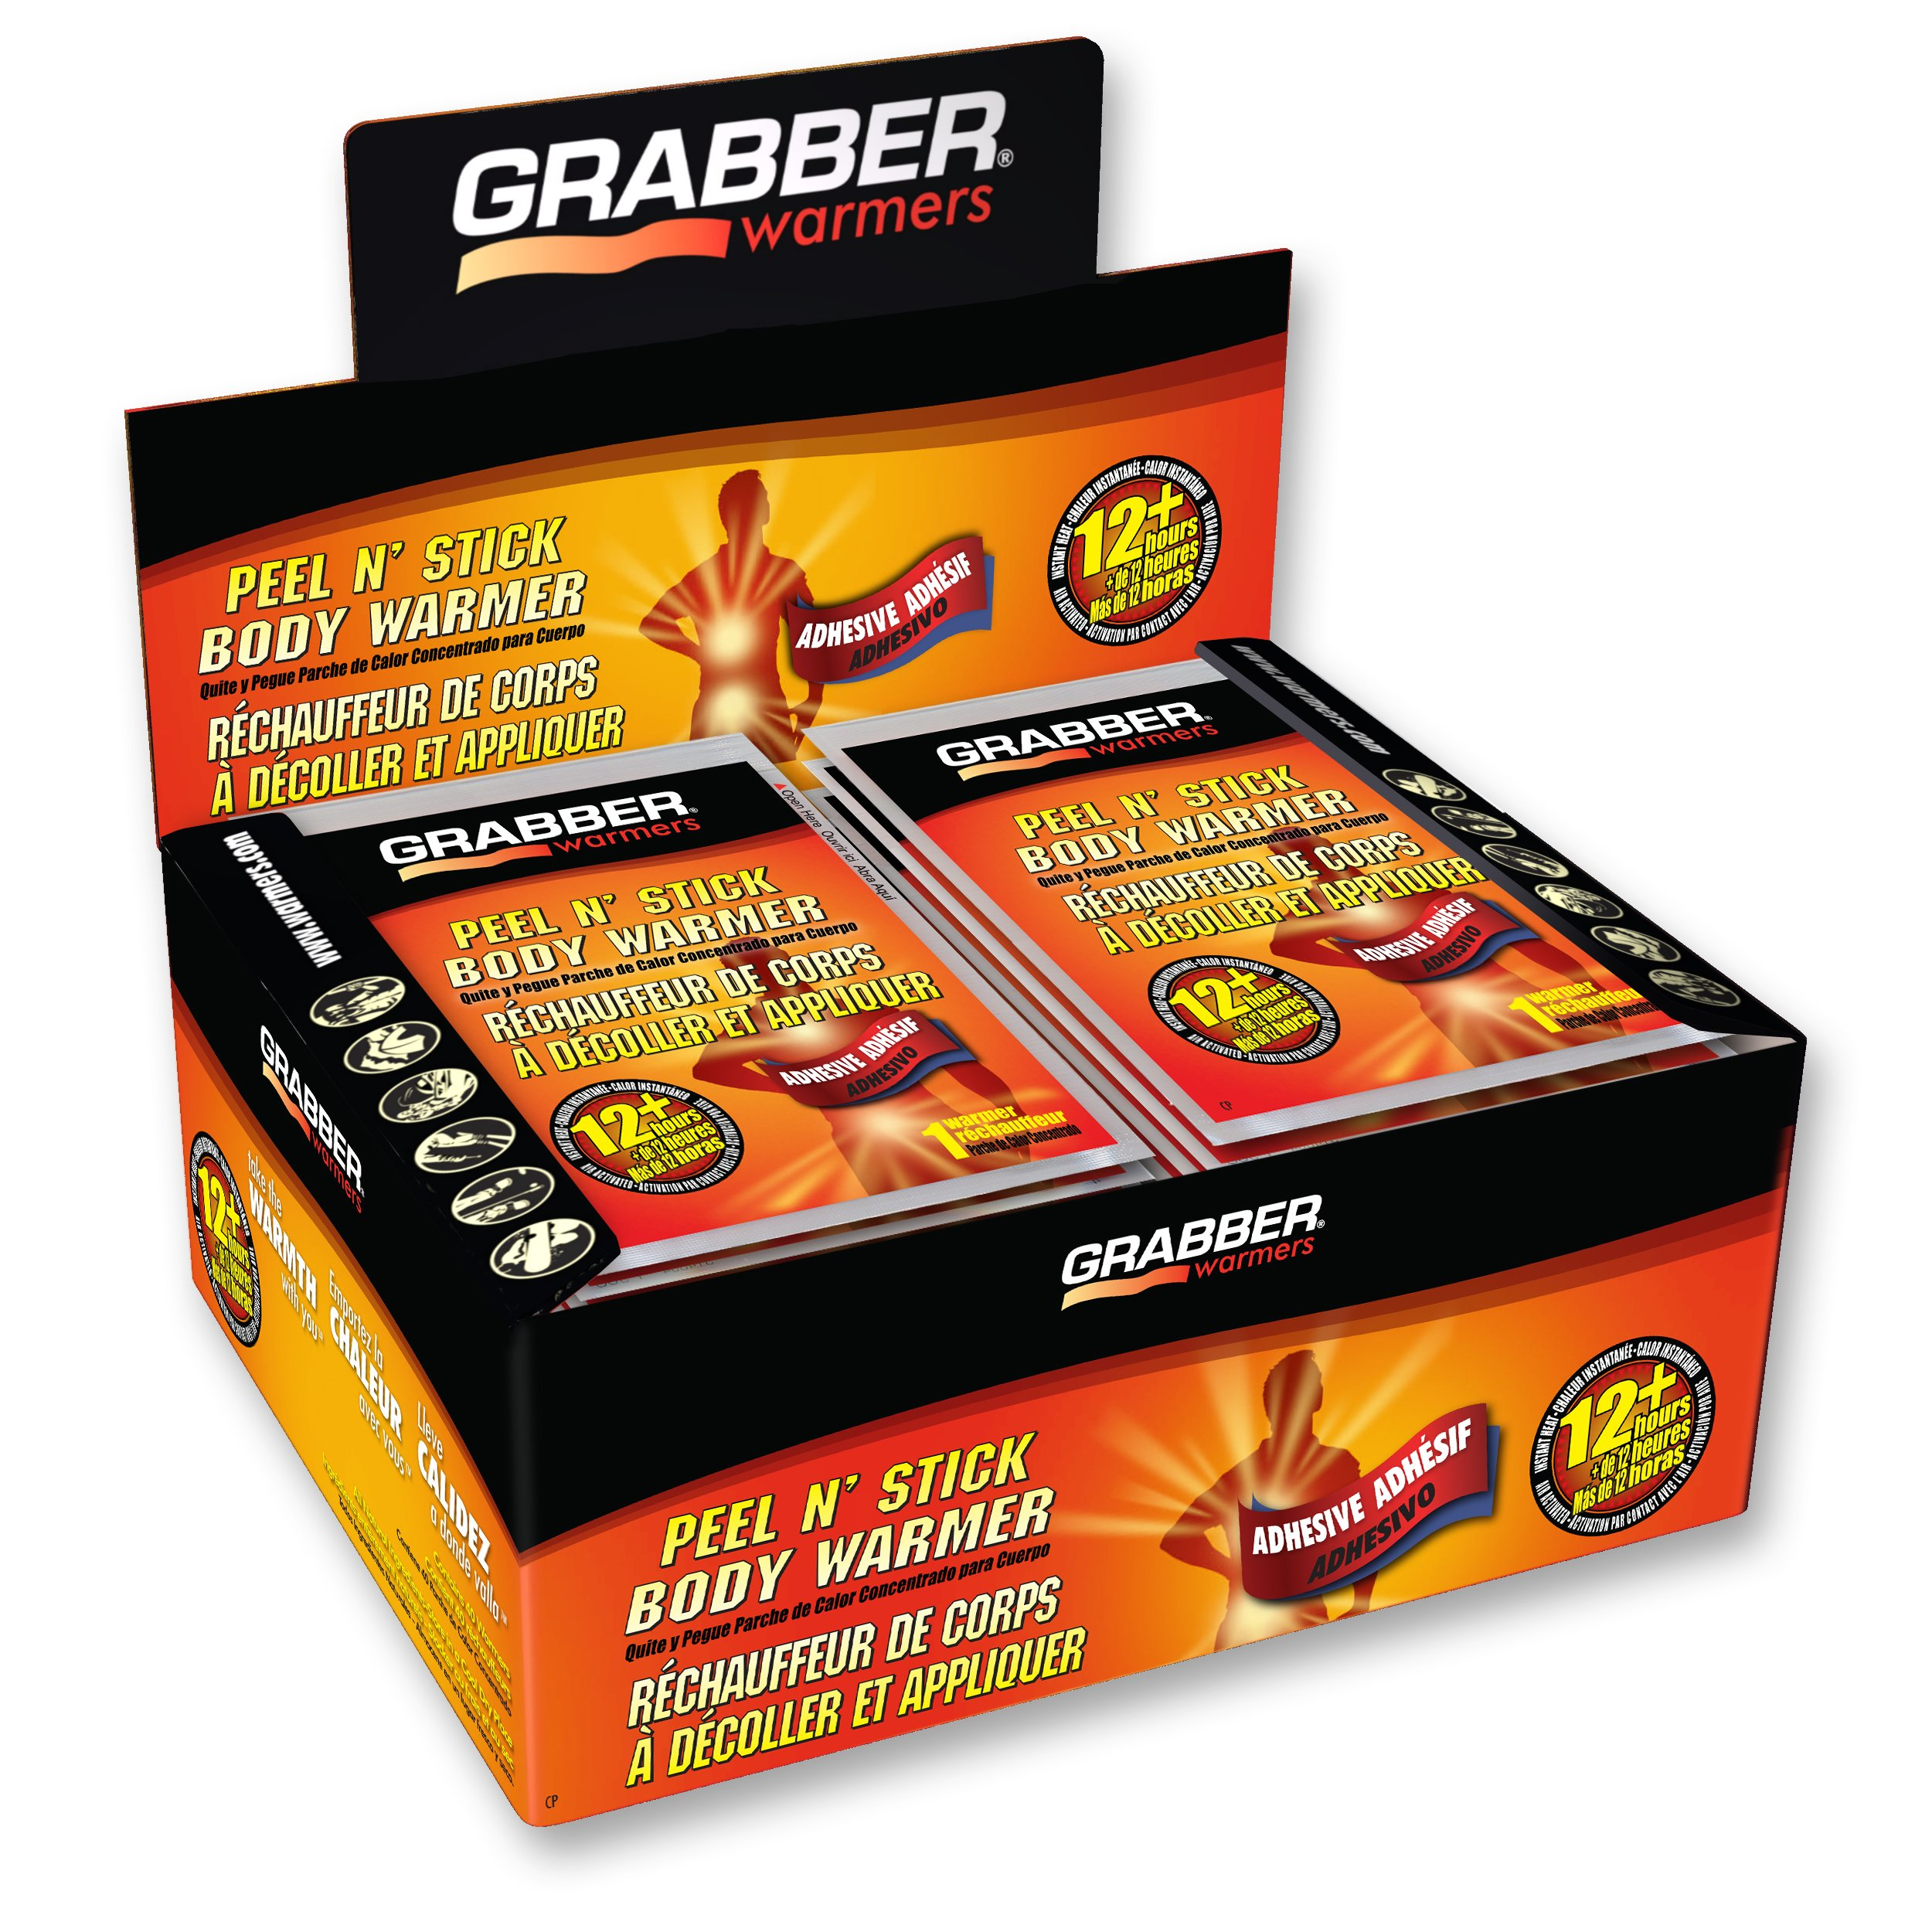 Grabber Warmers Peel N' Stick Body Warmers - Long Lasting Safe Natural Odorless Air Activated Warmers - Up to 12 Hours of Heat - 40 Count